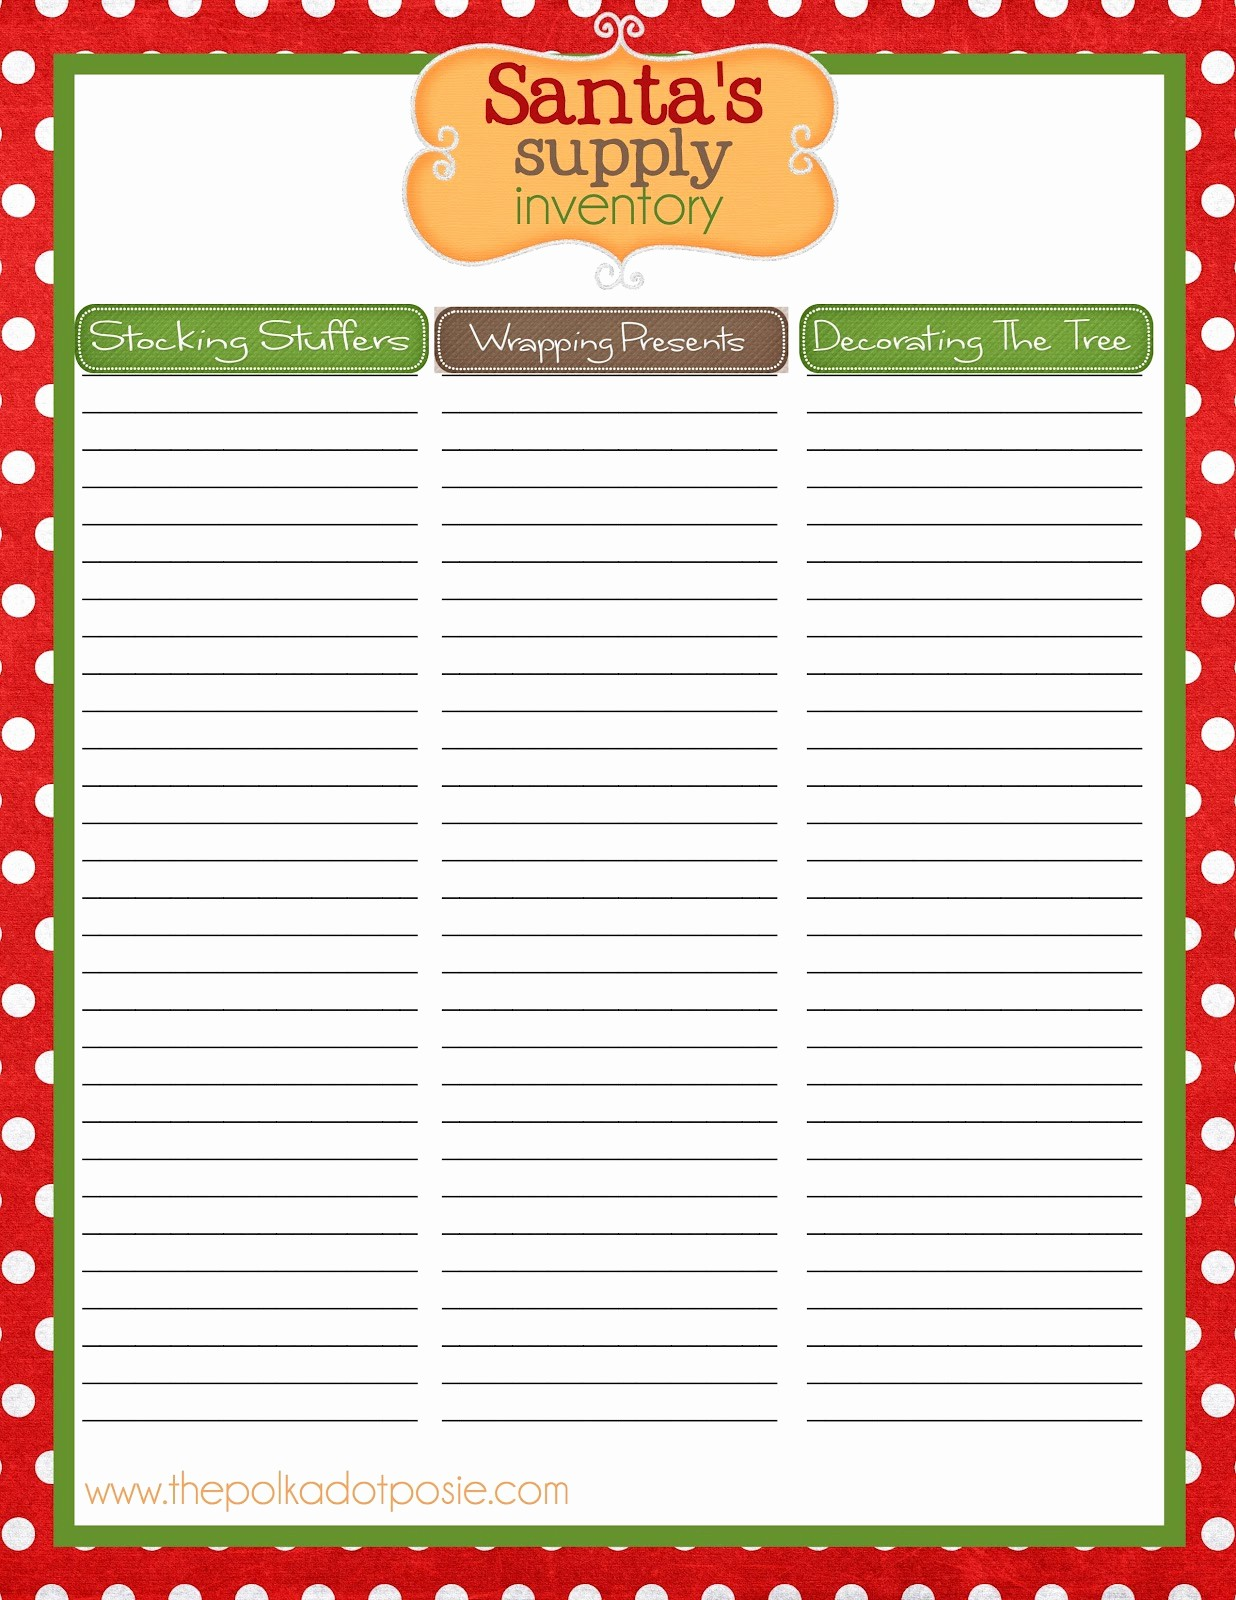 Holiday Sign Up Sheet Template Beautiful the Polka Dot Posie Christmas organizing Printables to